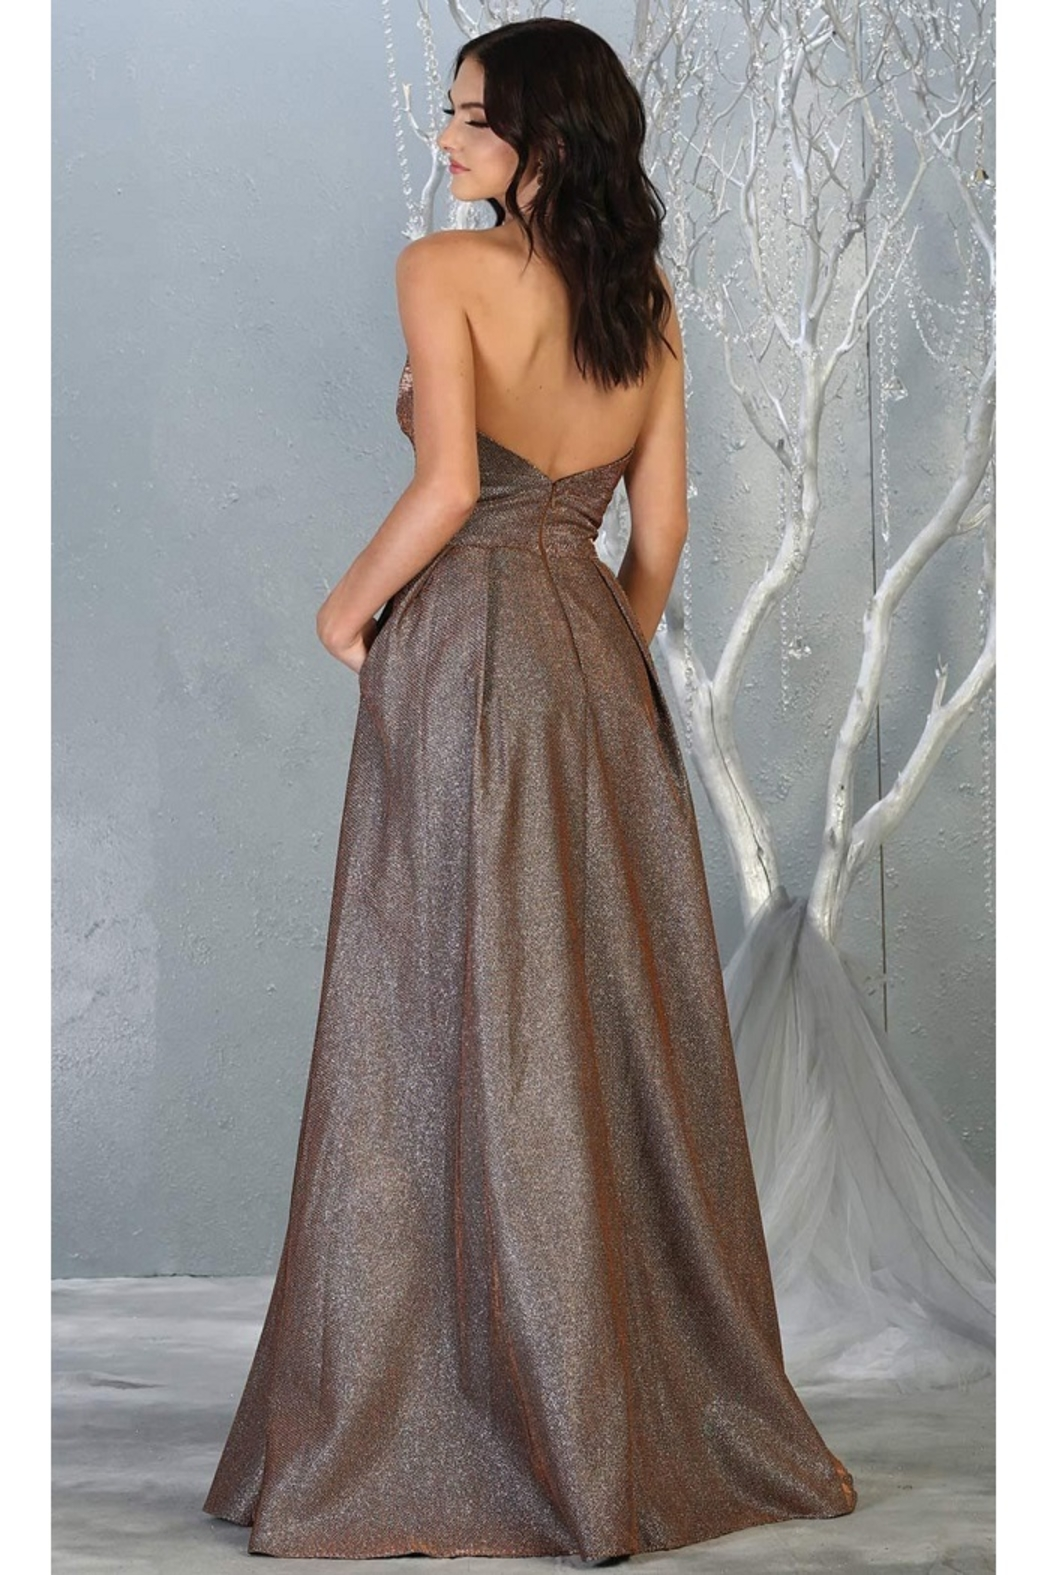 May Queen  Bronze Strapless A-Line Formal Long Dress - Front Full Image